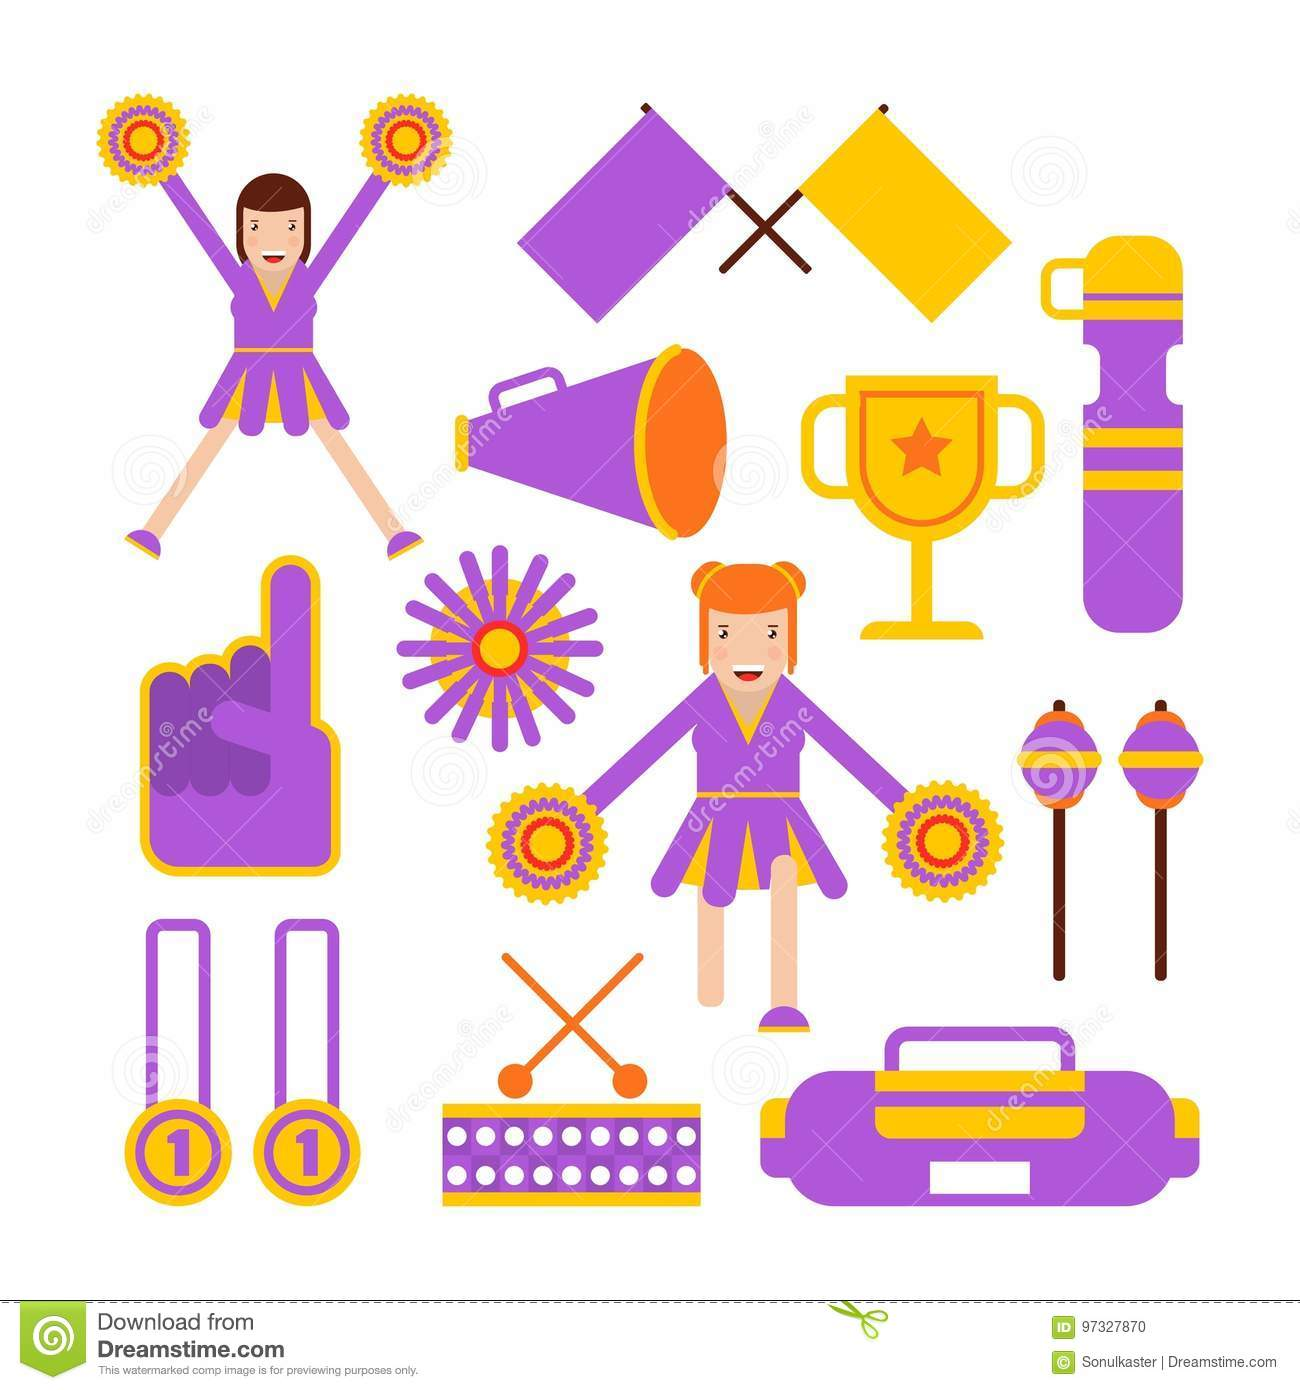 Cheerleaders Girls And Cheerleading Garments Vector Flat Isolated Icons Of Pom Poms Fan Flags Or Whistles And Megaphone Sport Club Winner Cup Awards And